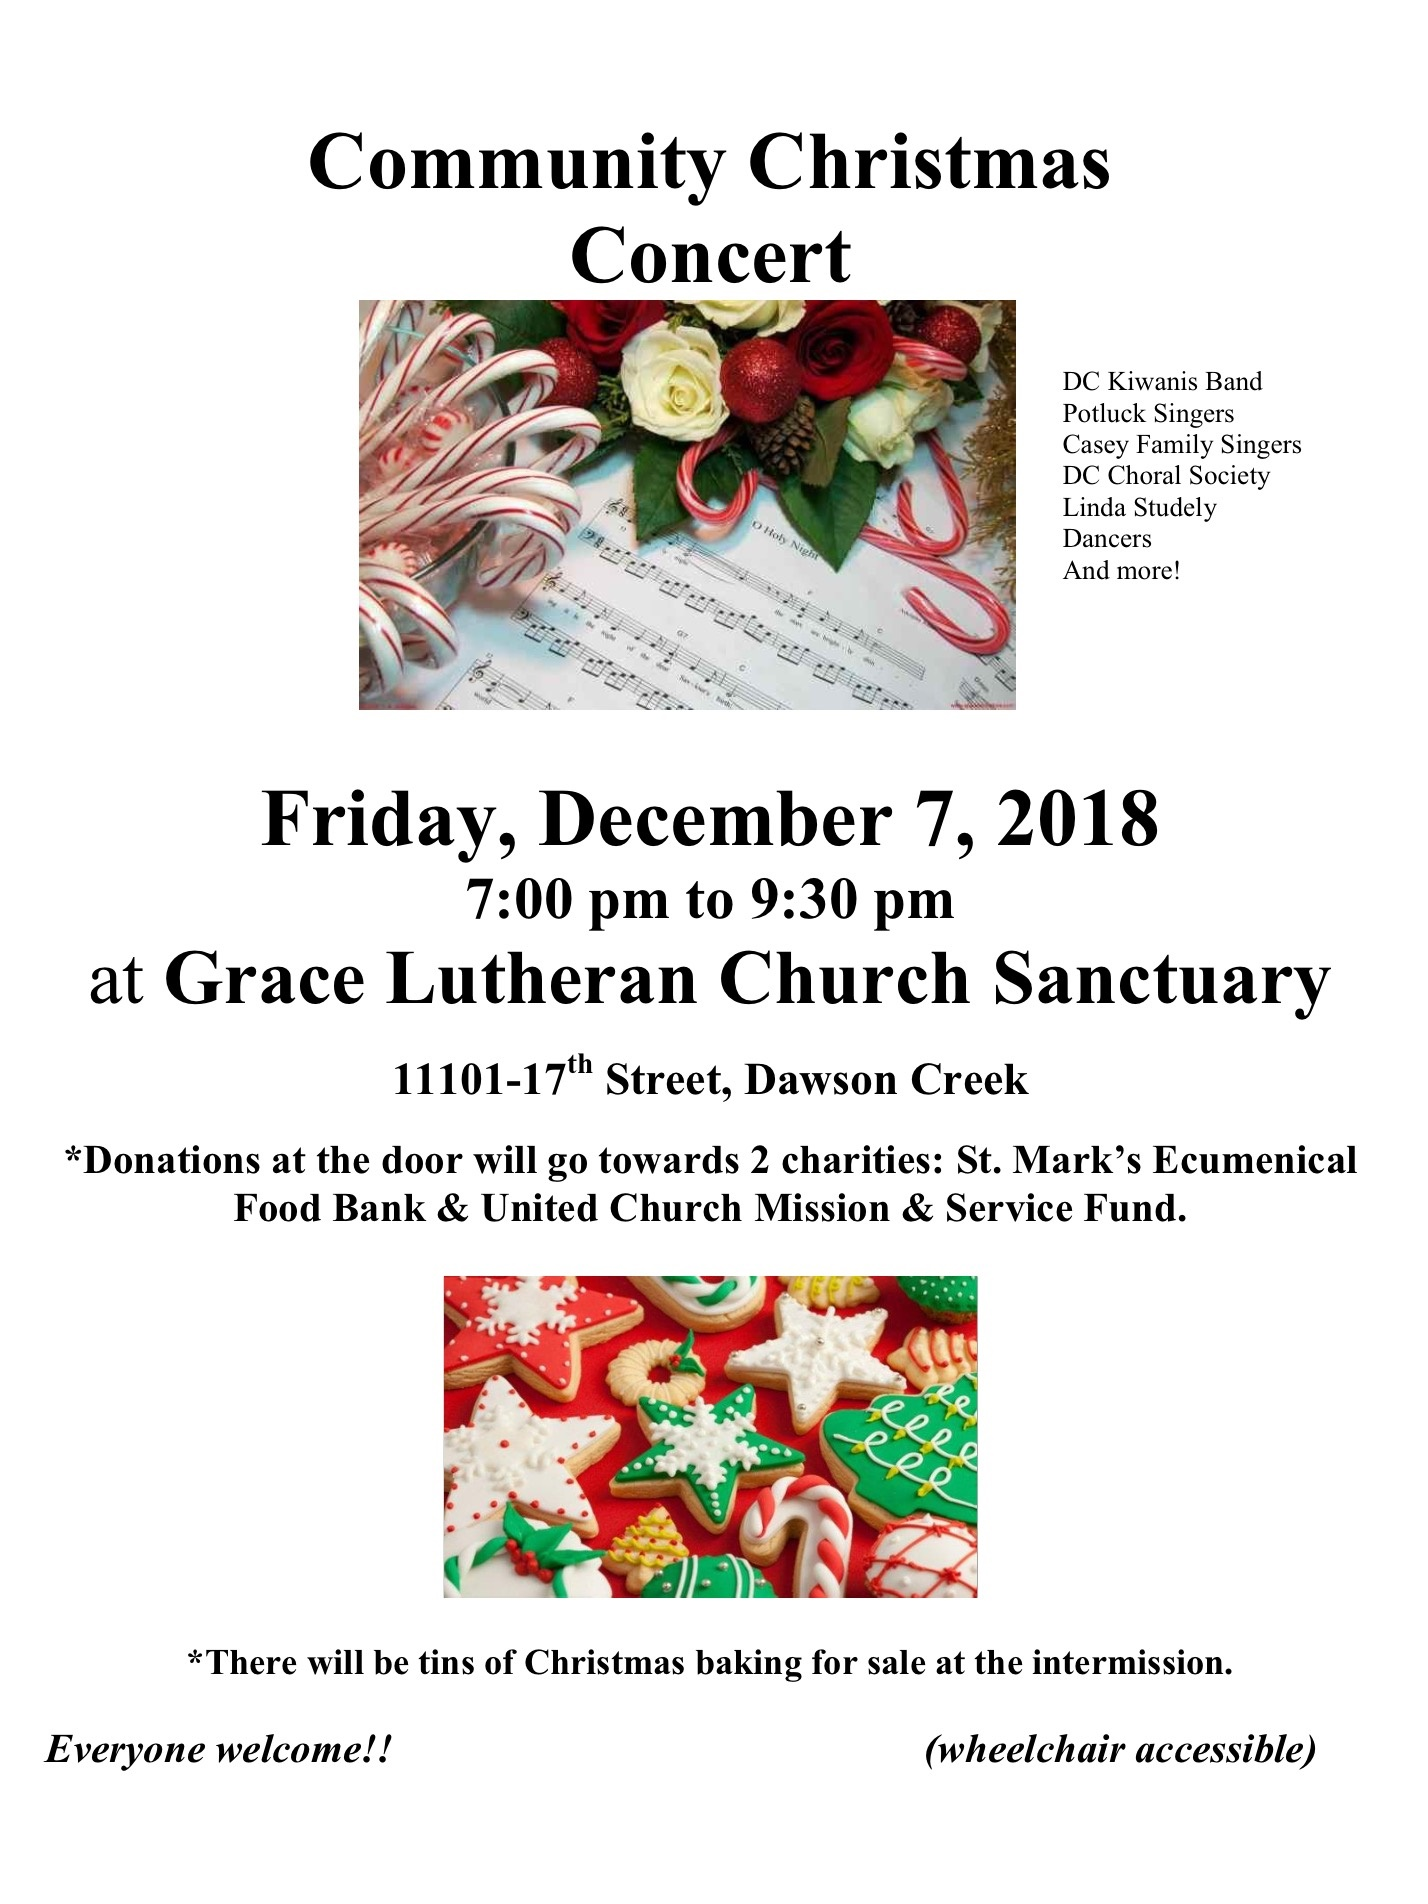 kiwanis band's annual community christmas concert december 7th